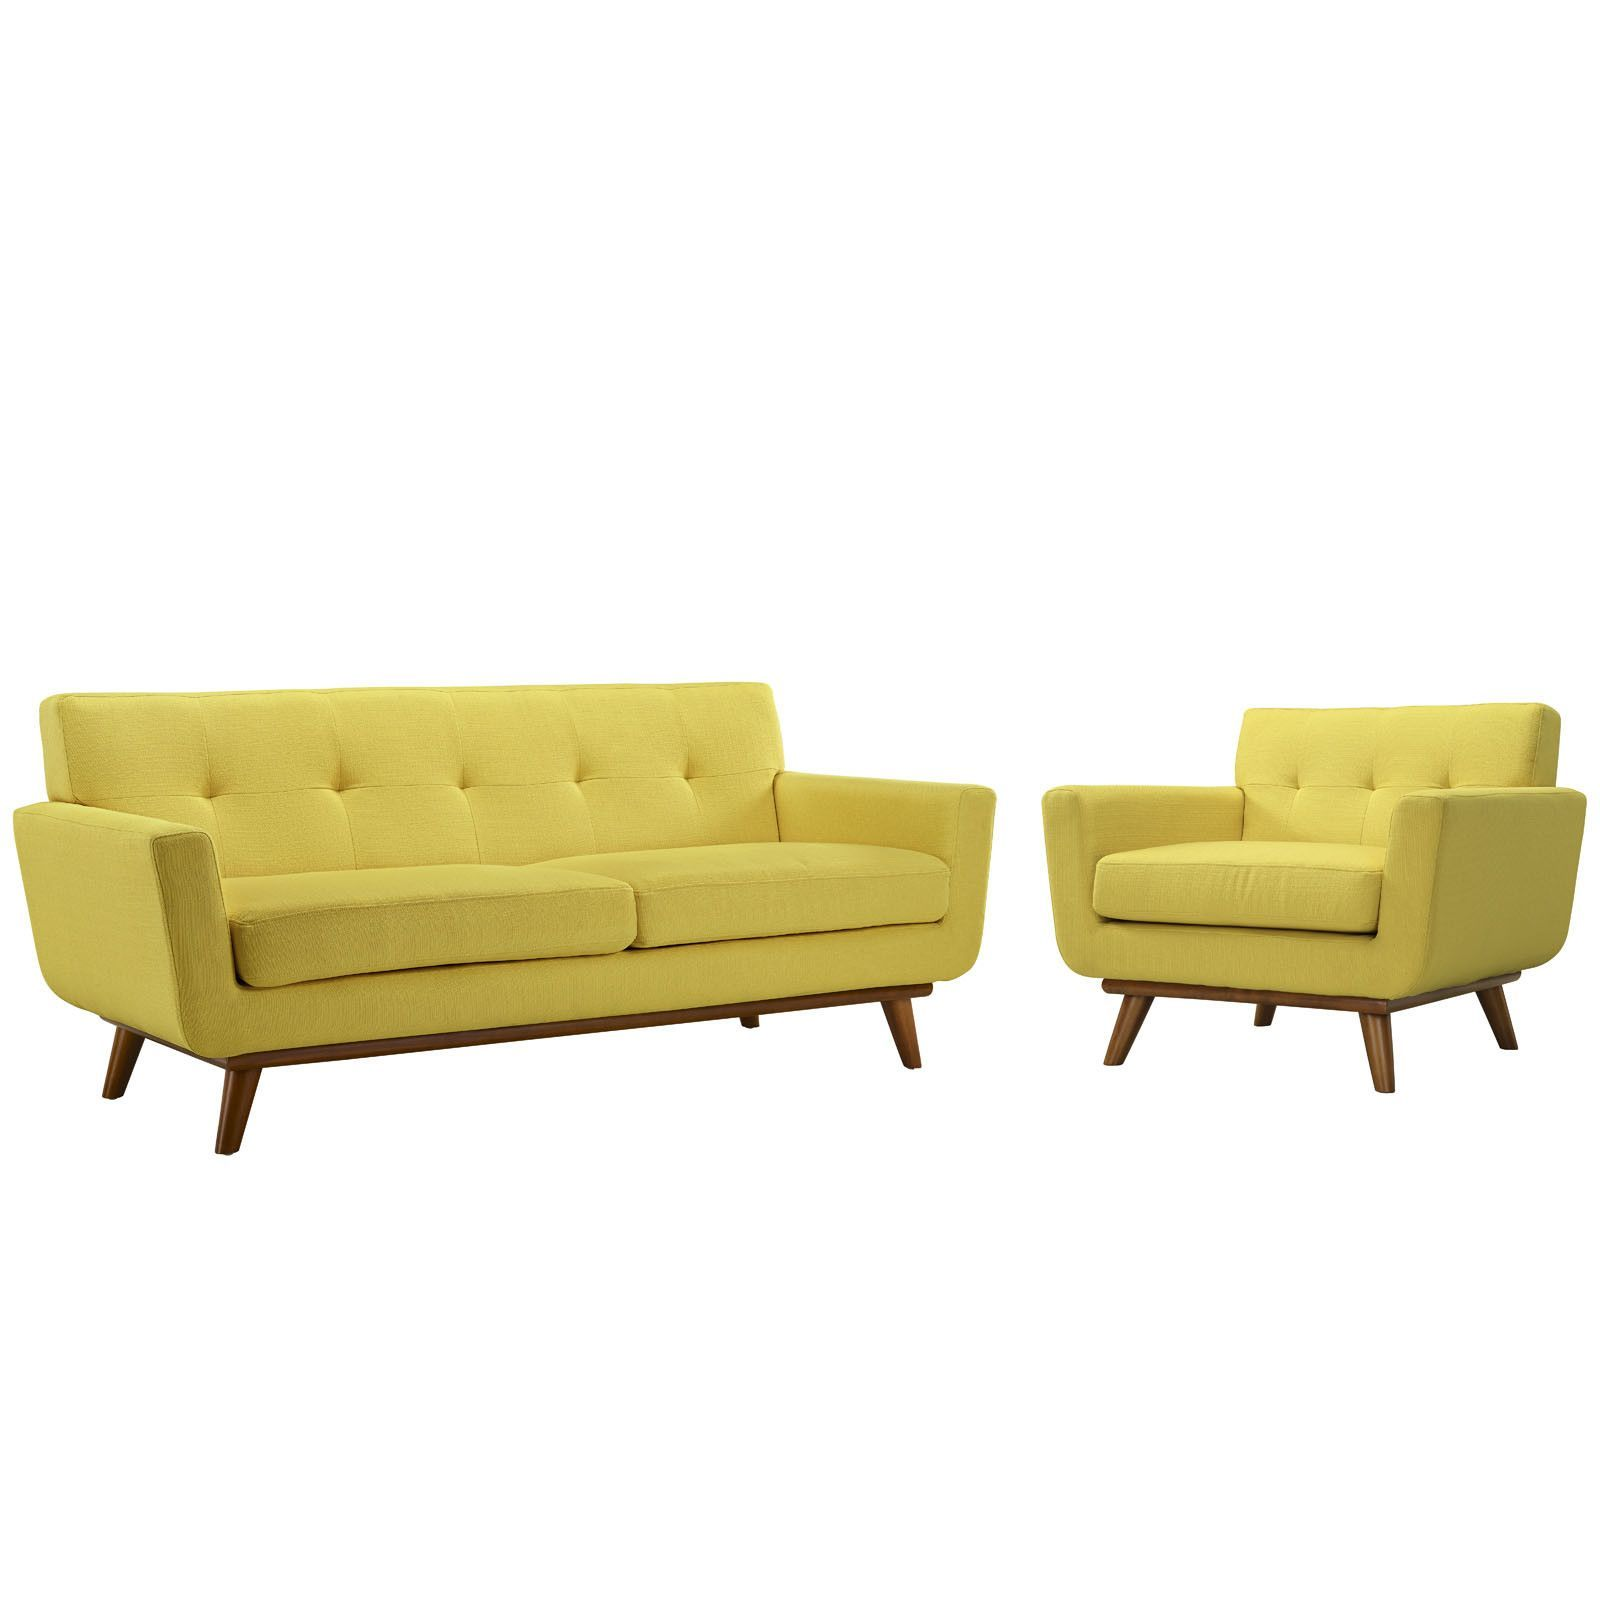 Engage Armchair And Loveseat Set Wayfair Living Room Sets Living Room Upholstery Armchair